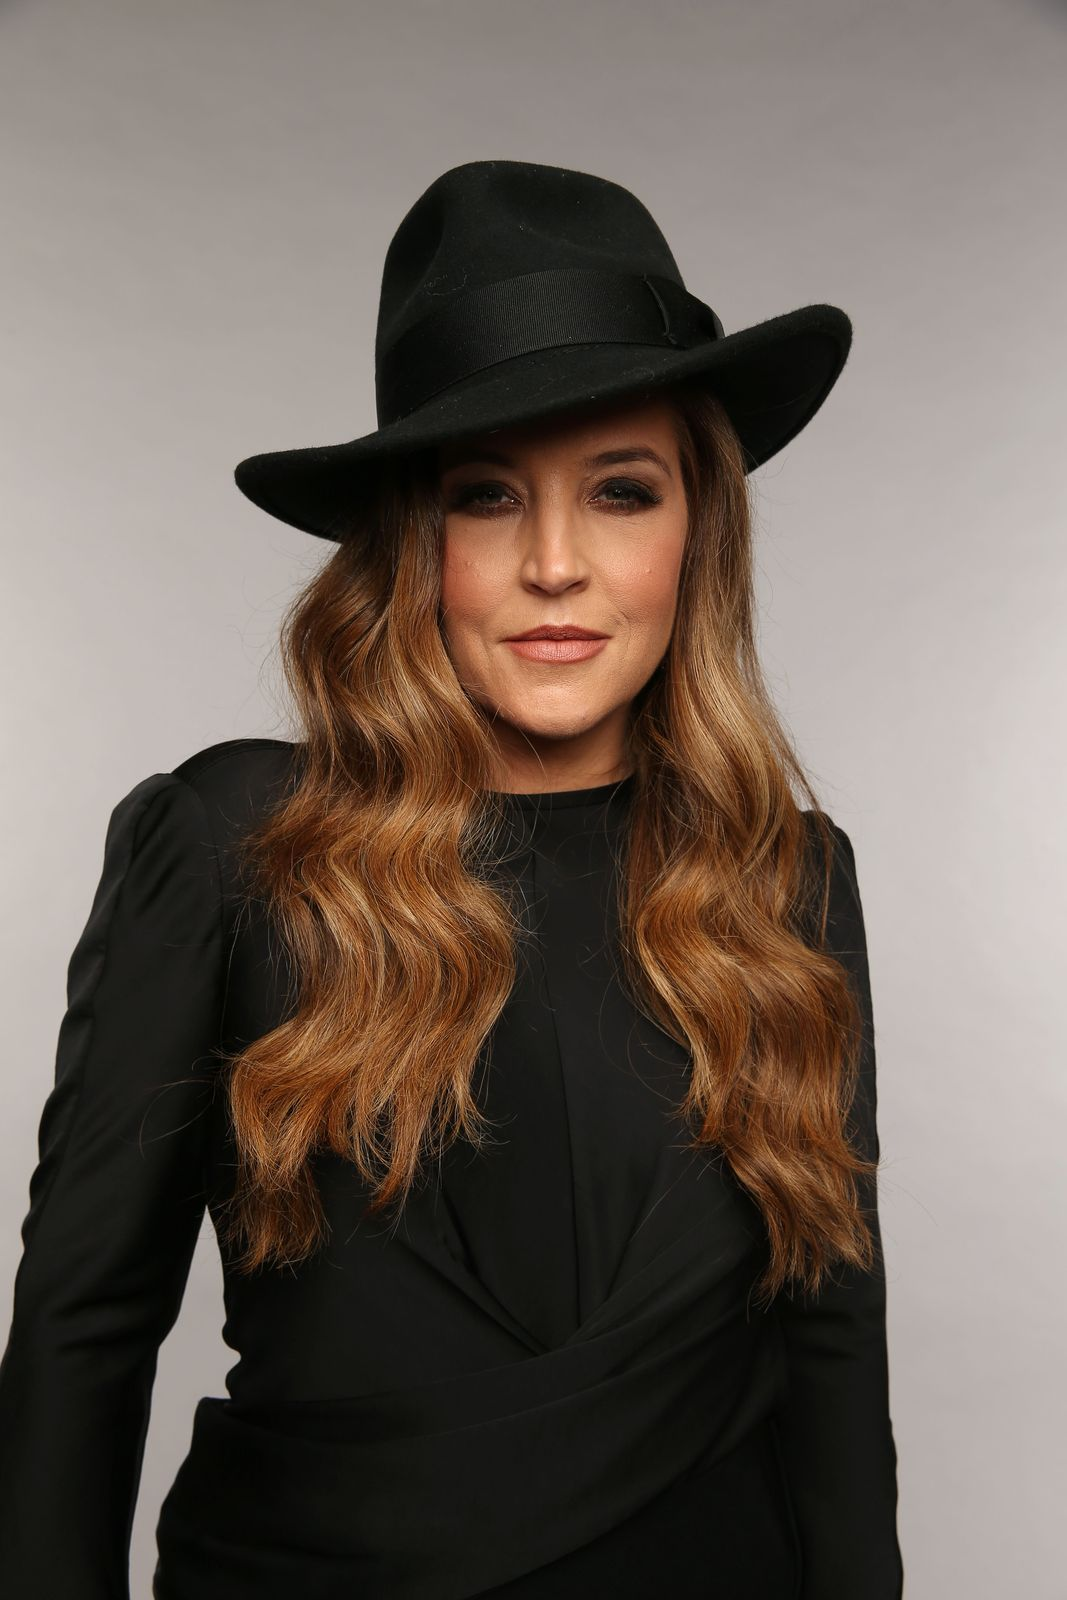 Lisa Marie Presley at the Wonderwall portrait studio during the CMT Music Awards on June 5, 2013, in Nashville, Tennessee | Photo: Christopher Polk/Getty Images